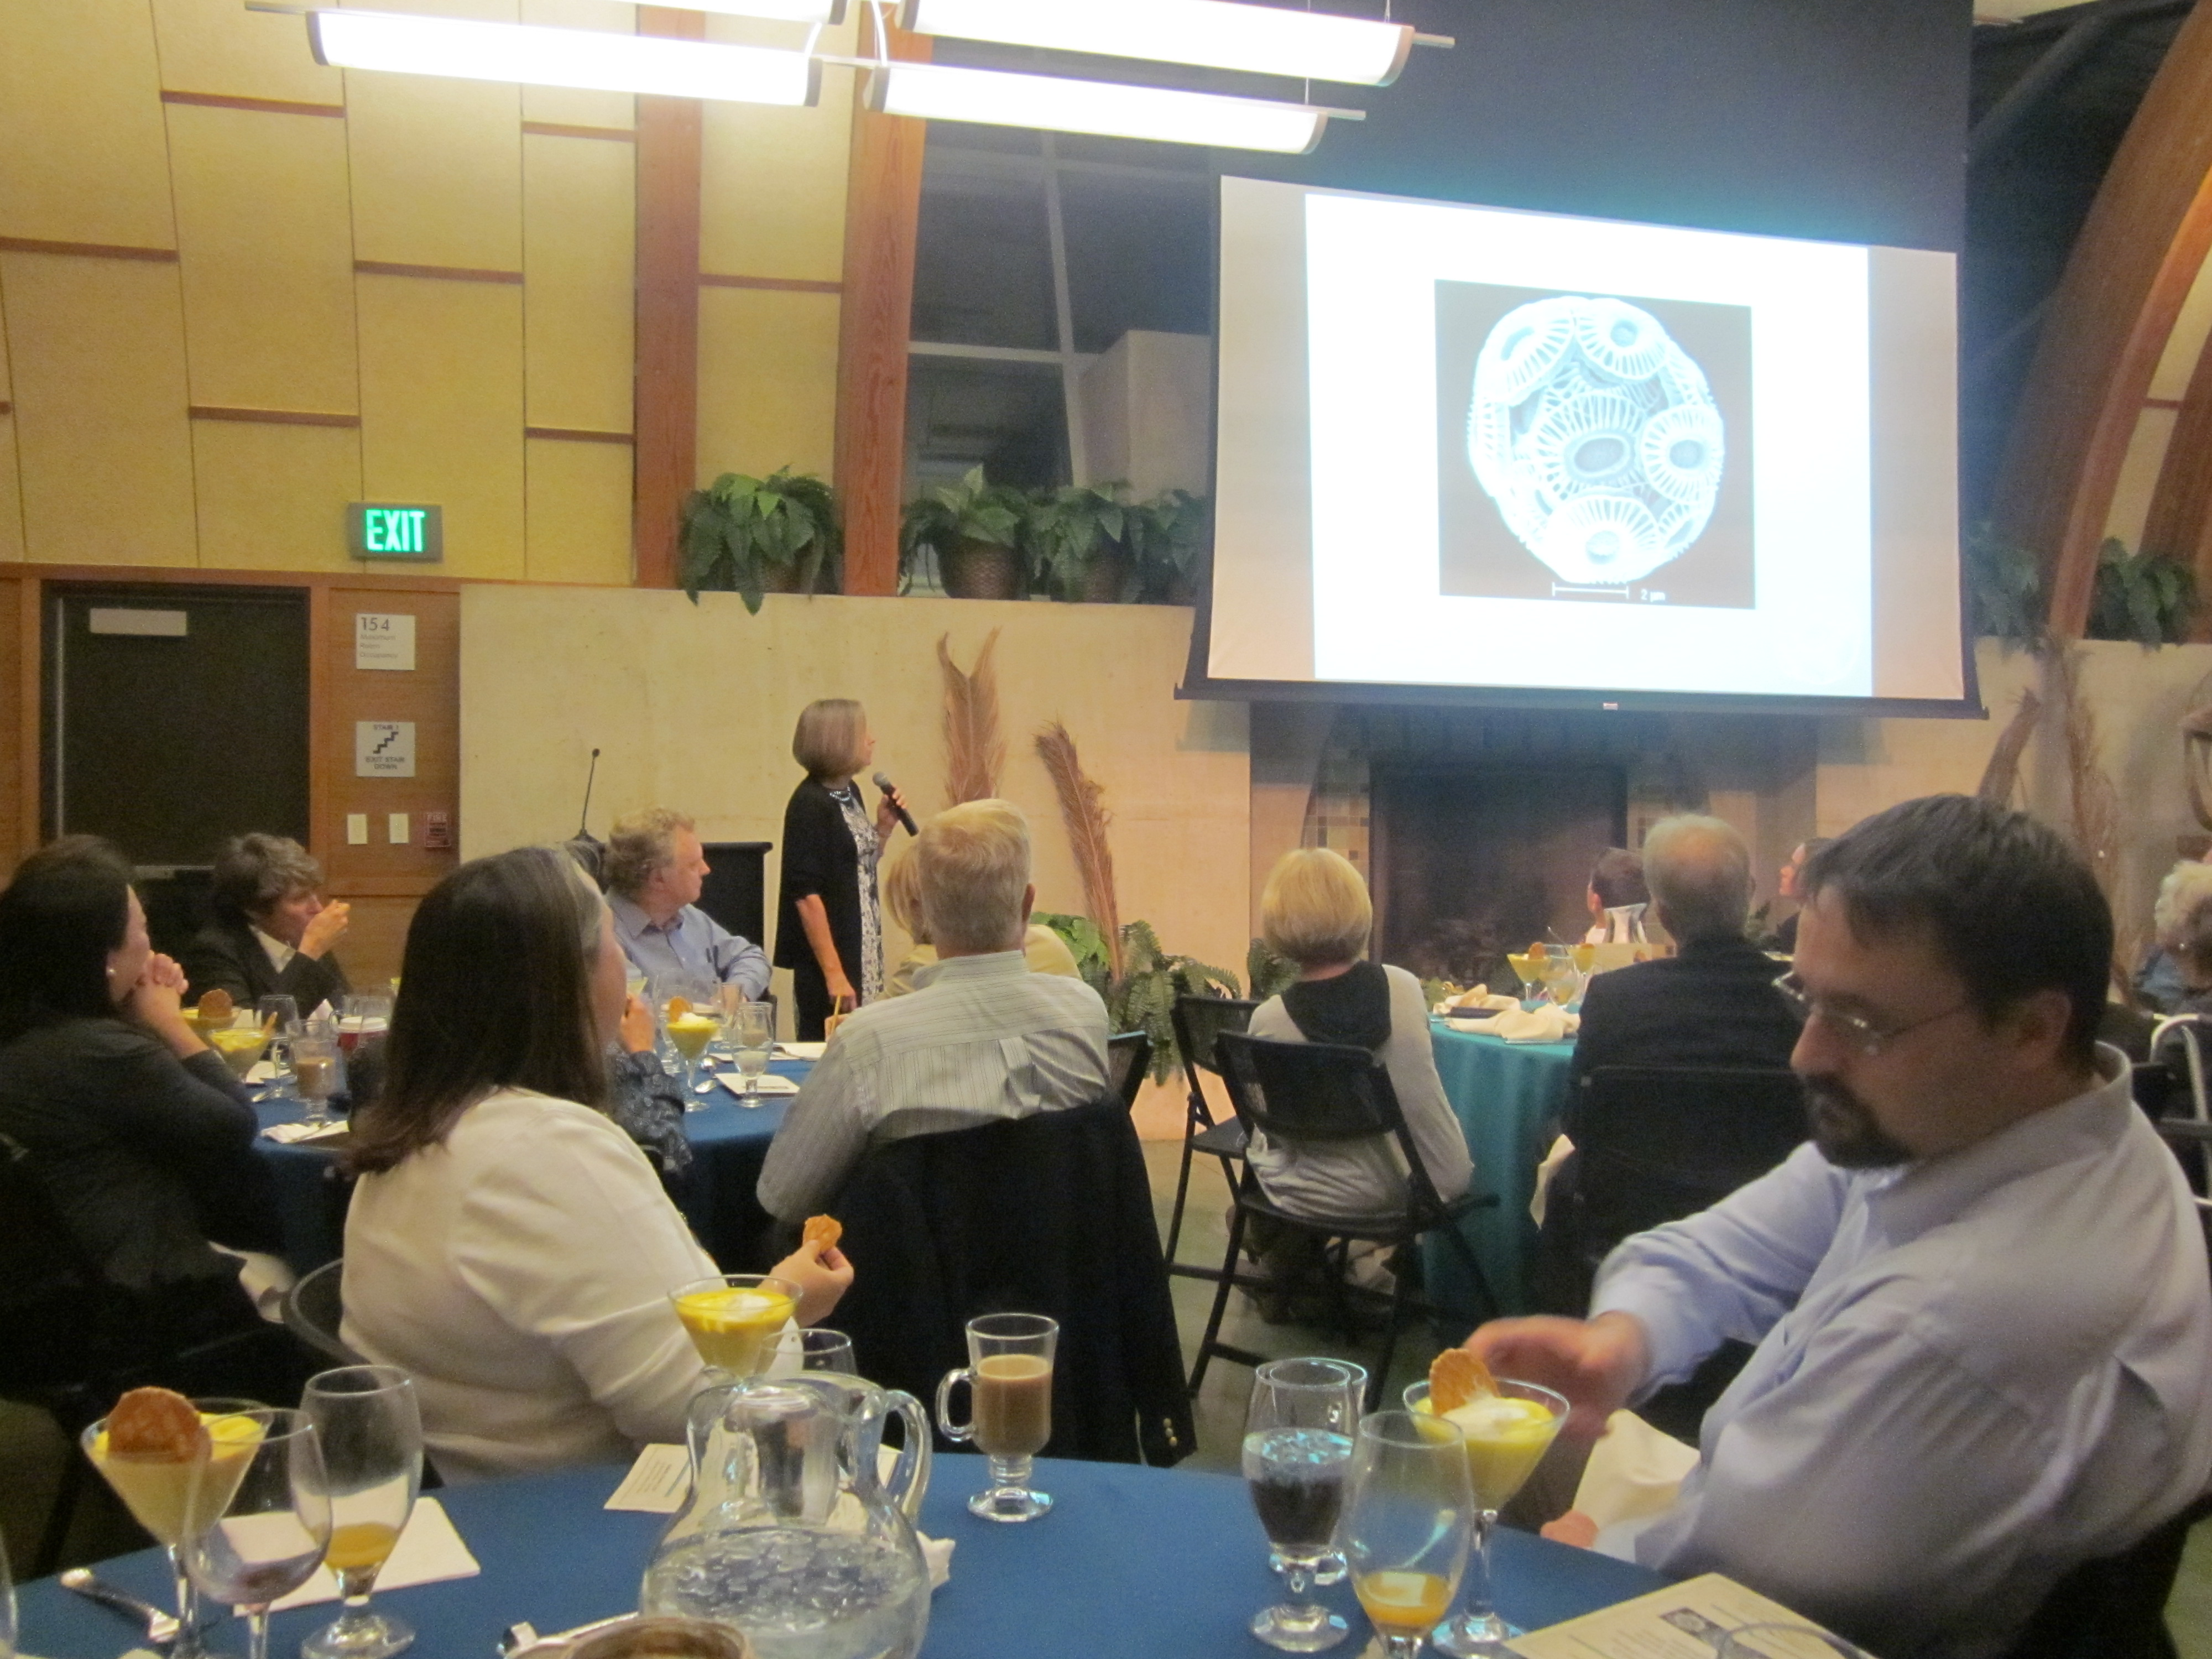 Fall 2014 Research Colloquium Dinner